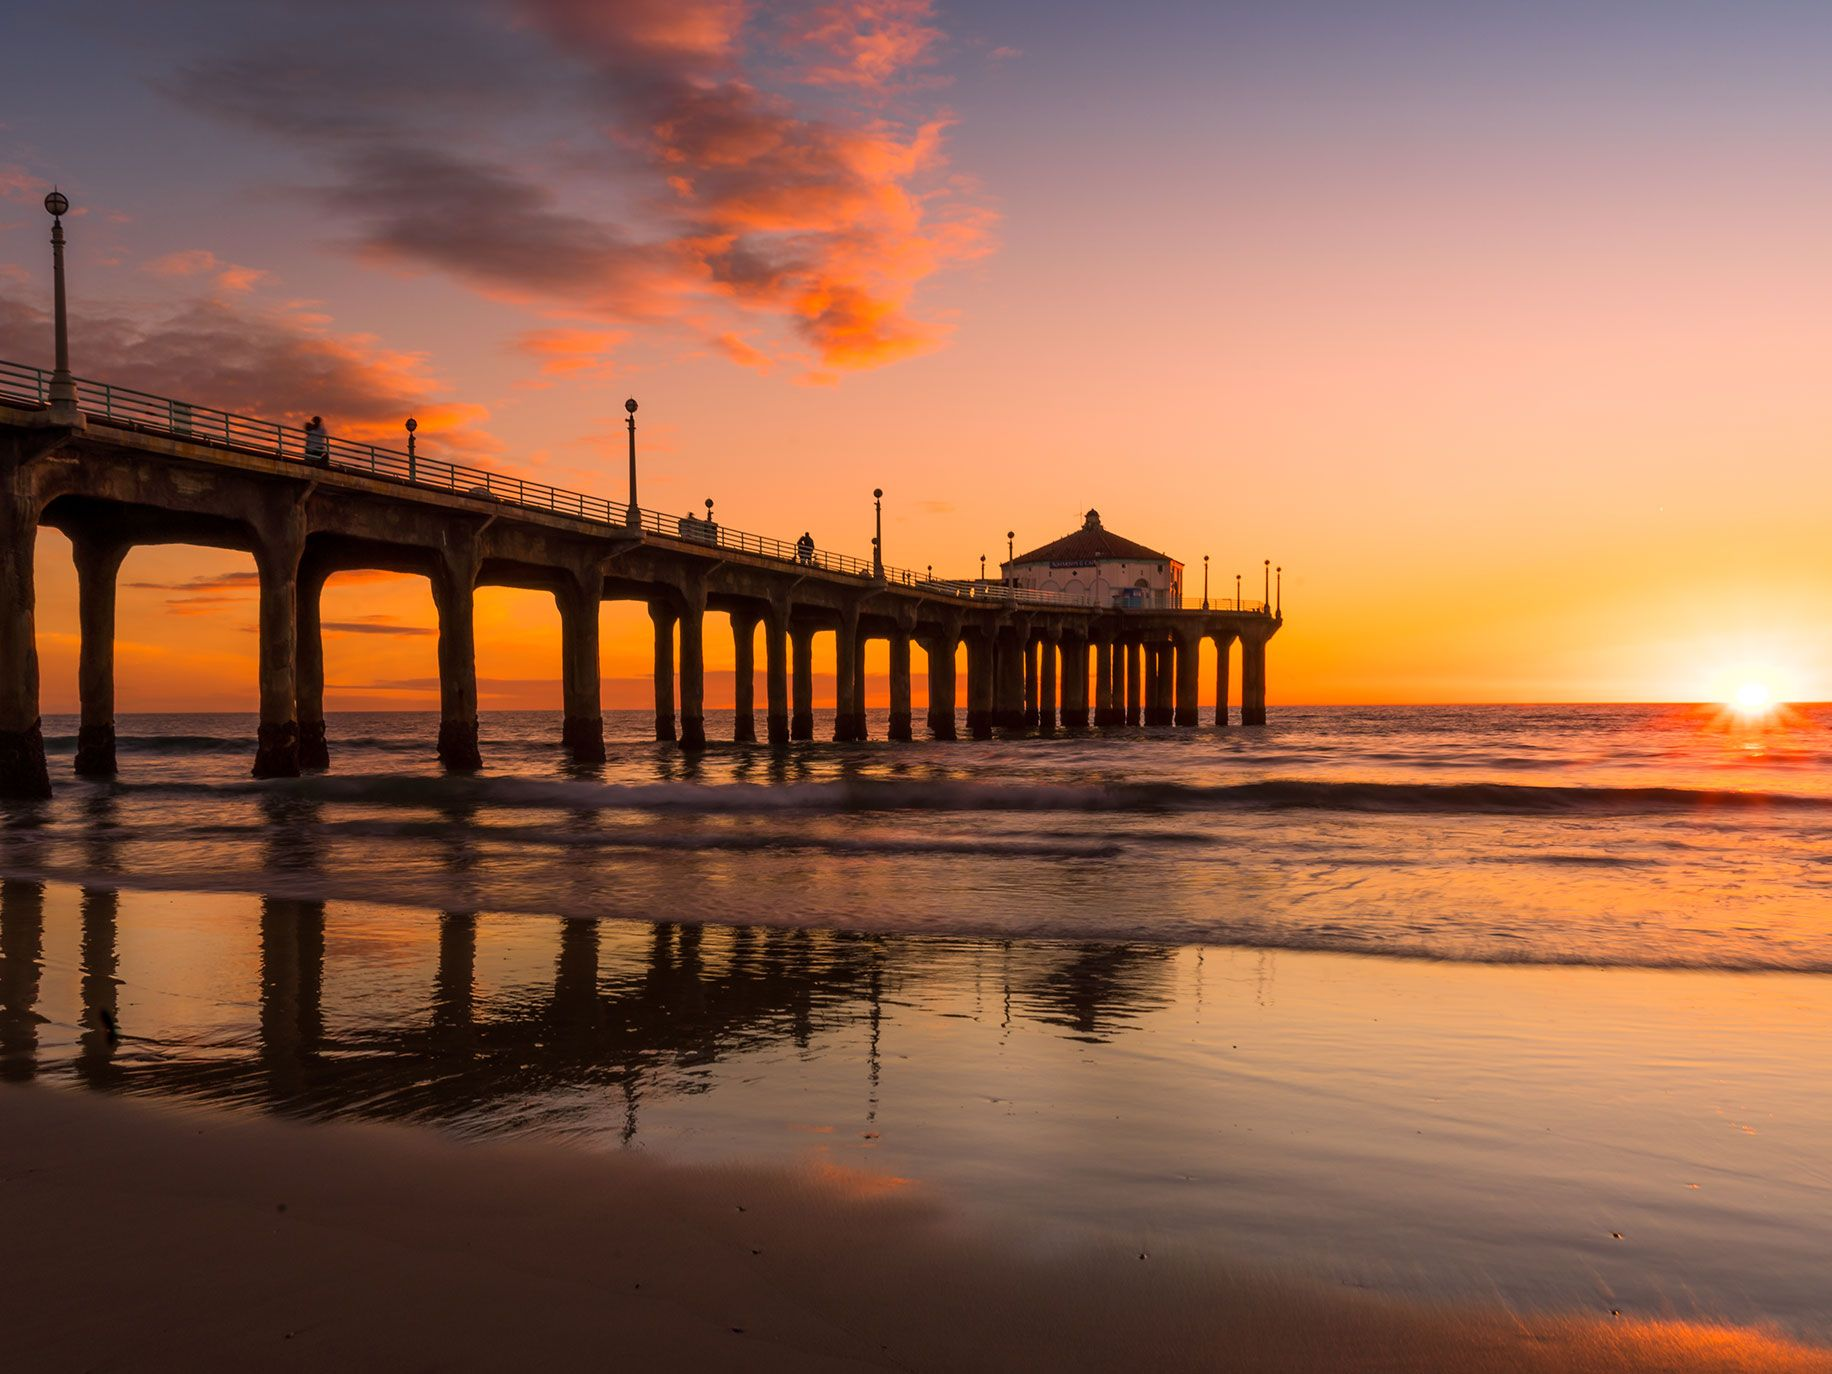 The Manhattan Beach Pier is one of a favorite pier of Ramelli's to photograph, along with Hermosa Beach Pier.